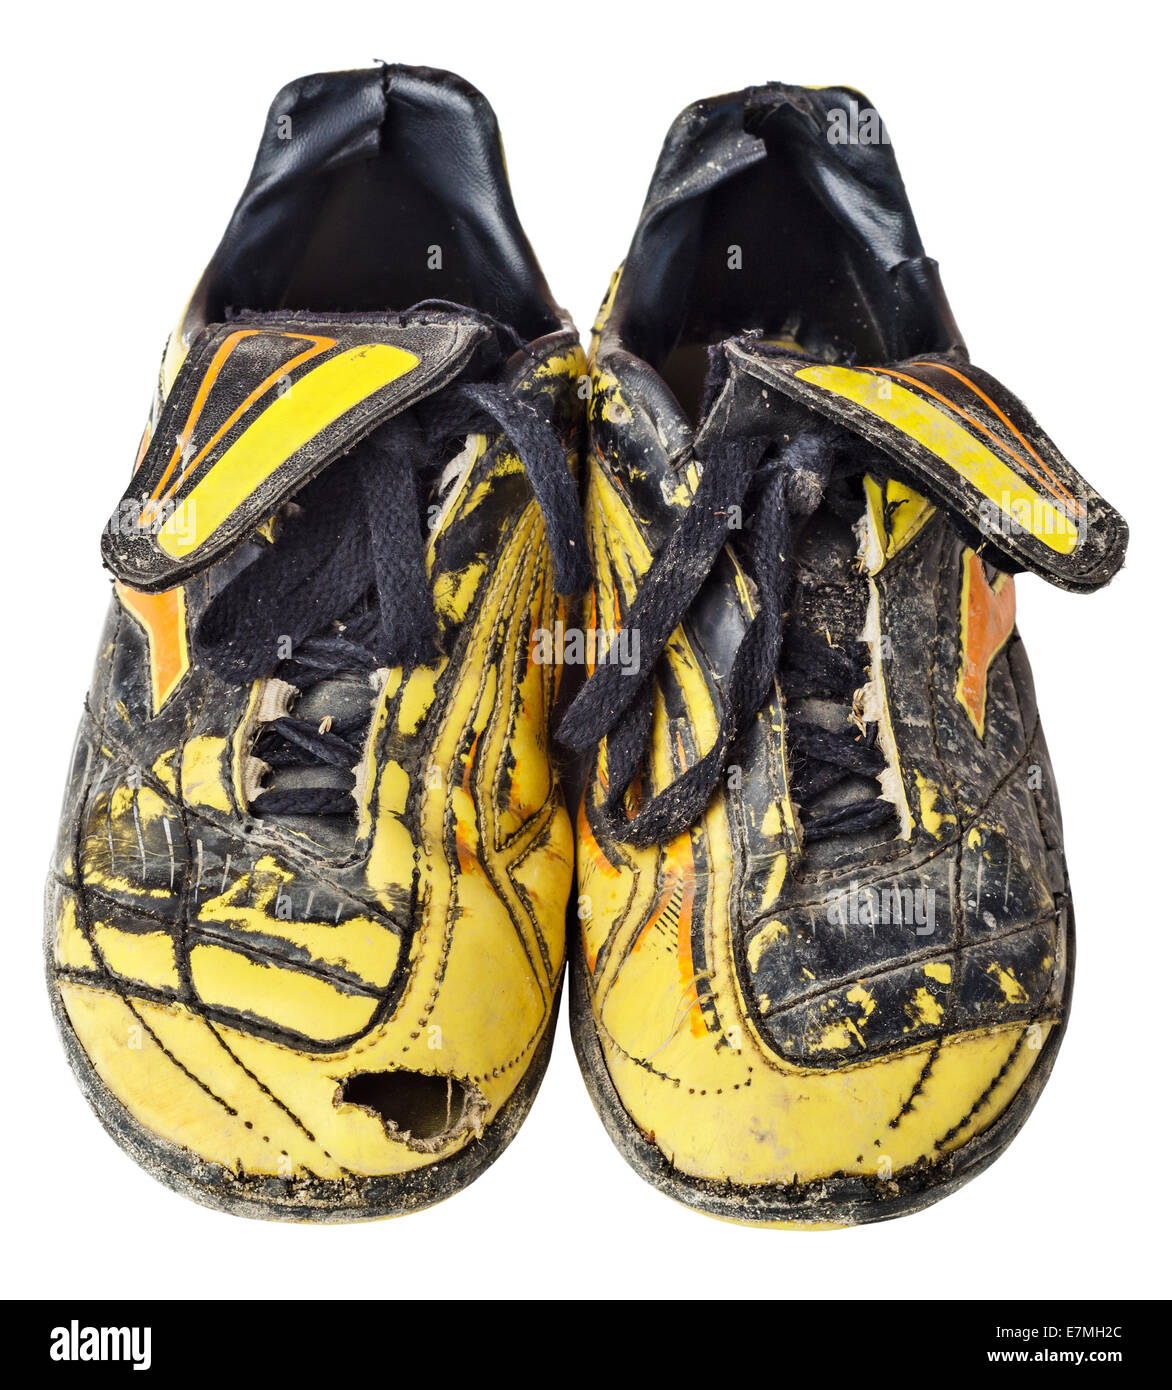 96e818b64 Pair of old football shoes. Soccer boots. Isolated on white background.  File contains a clipping path.